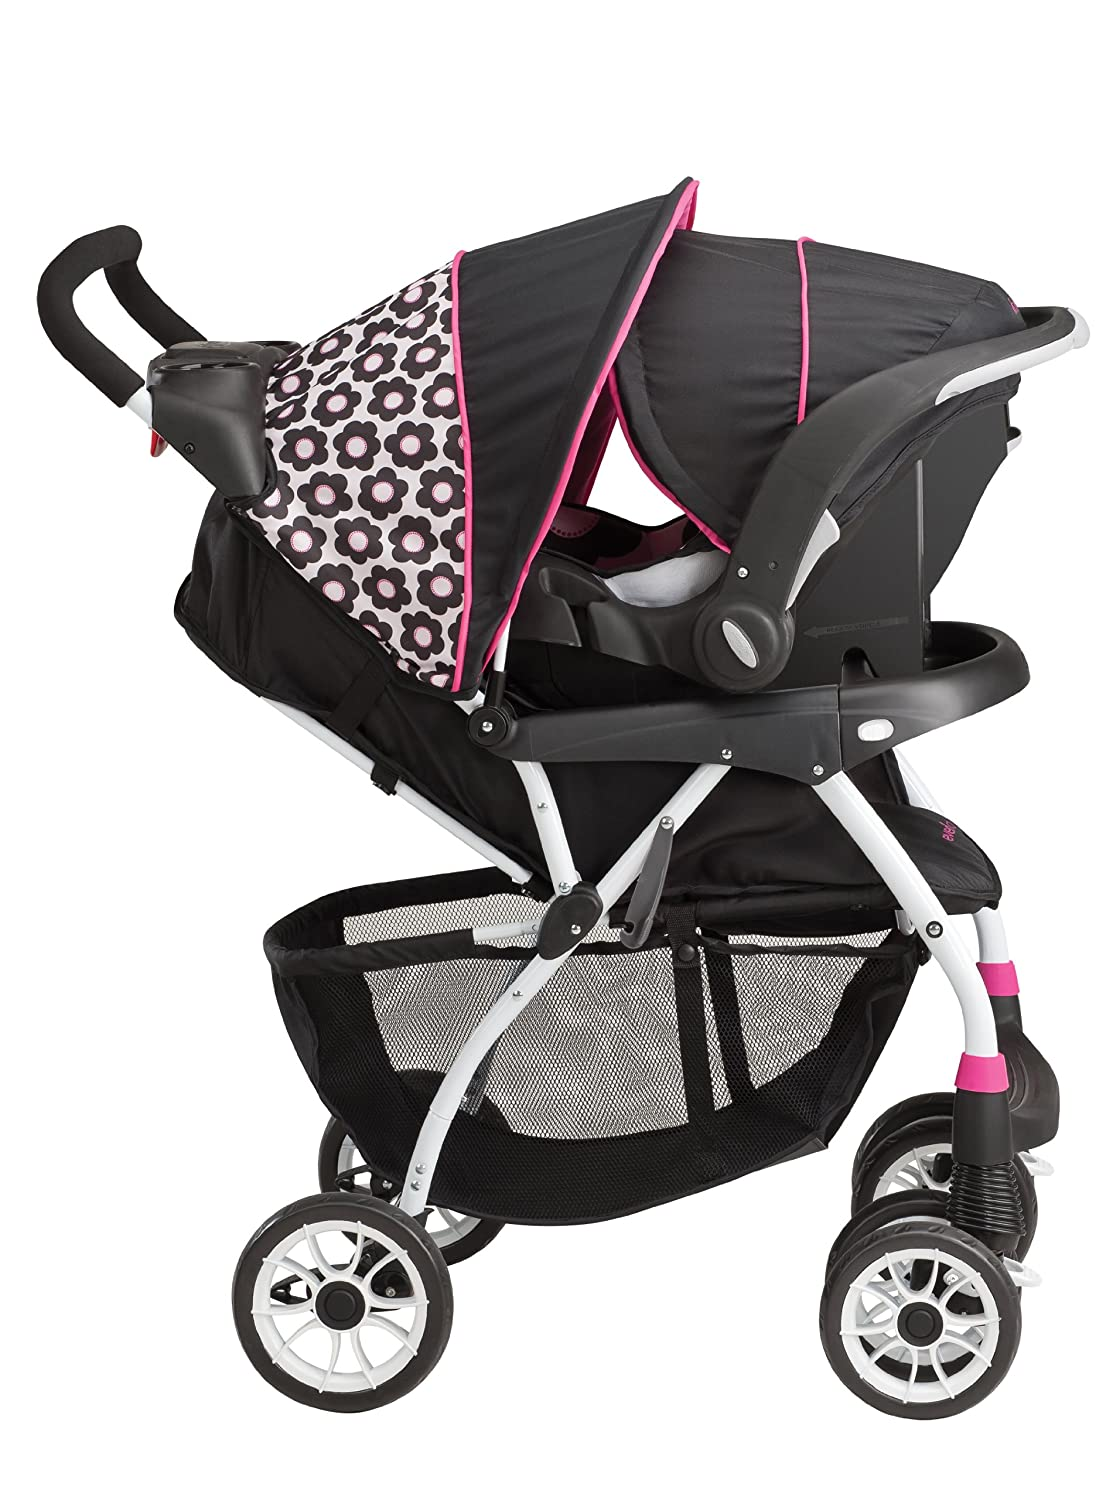 Evenflo Journey 300 Stroller with Embrace 35 Car Seat